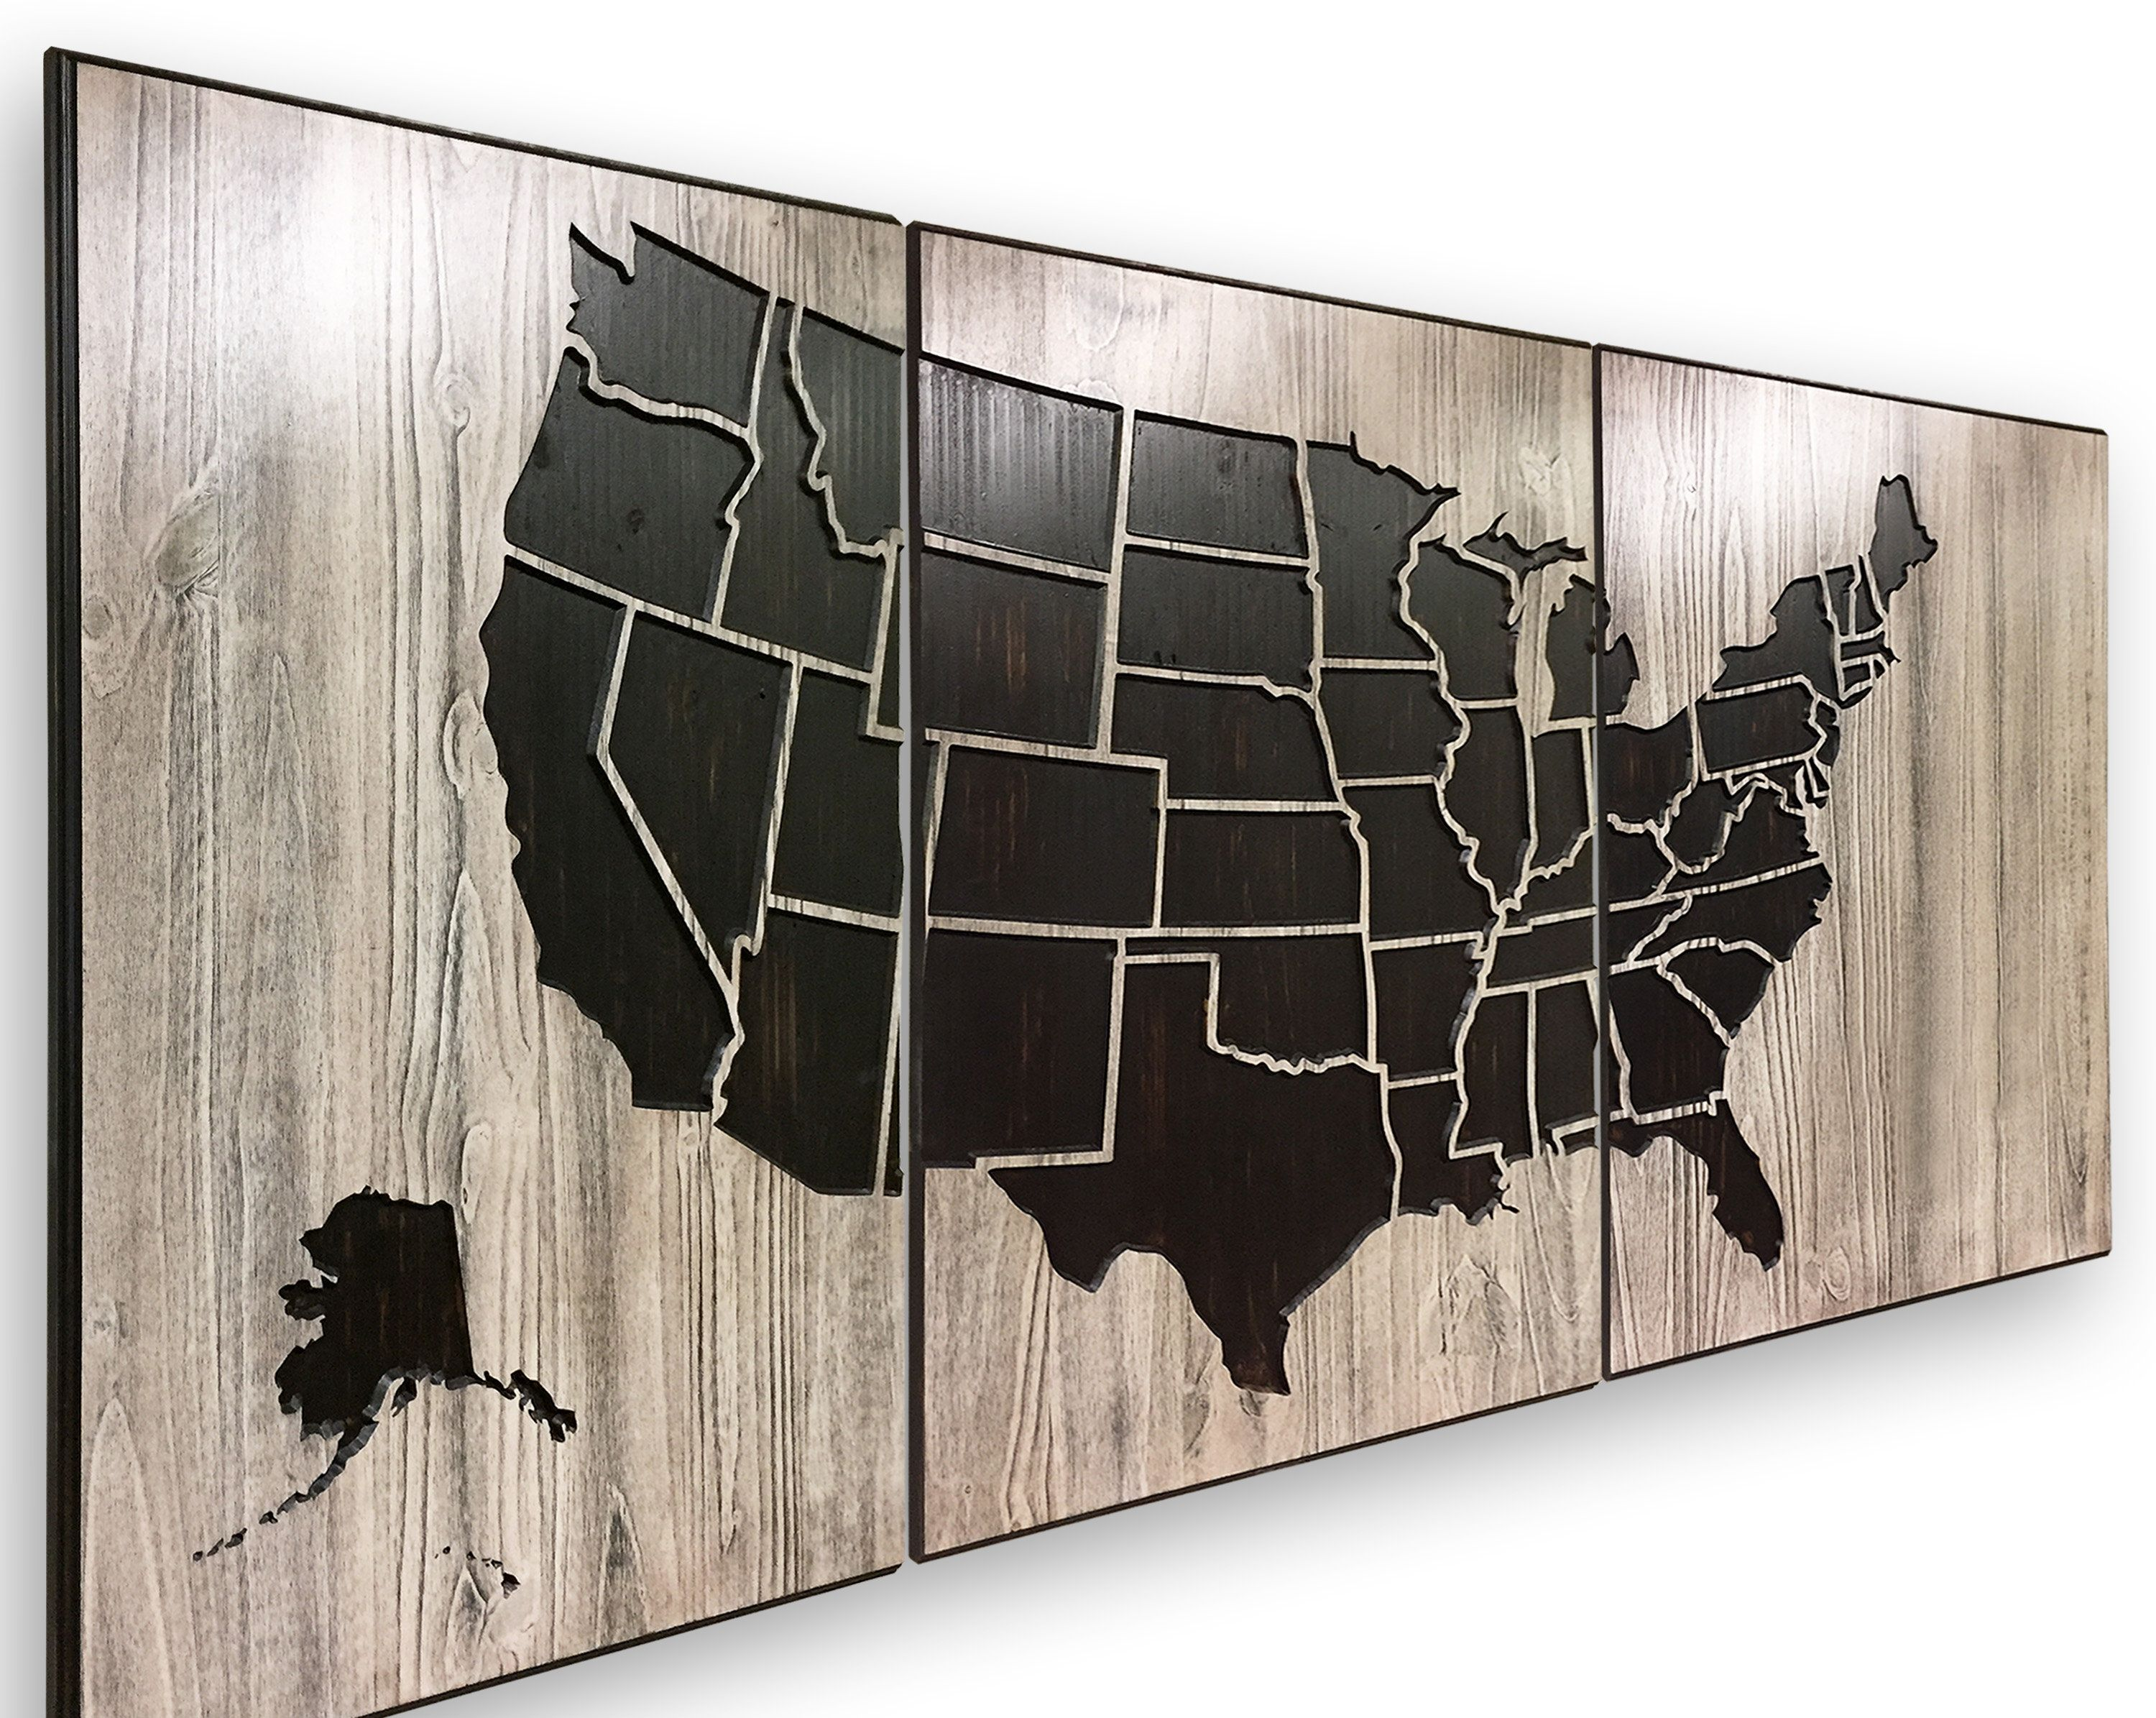 Us Map Artwork.Picture Of Us Carved 3d Us Map Art Wood Wall Art Poster Canvas